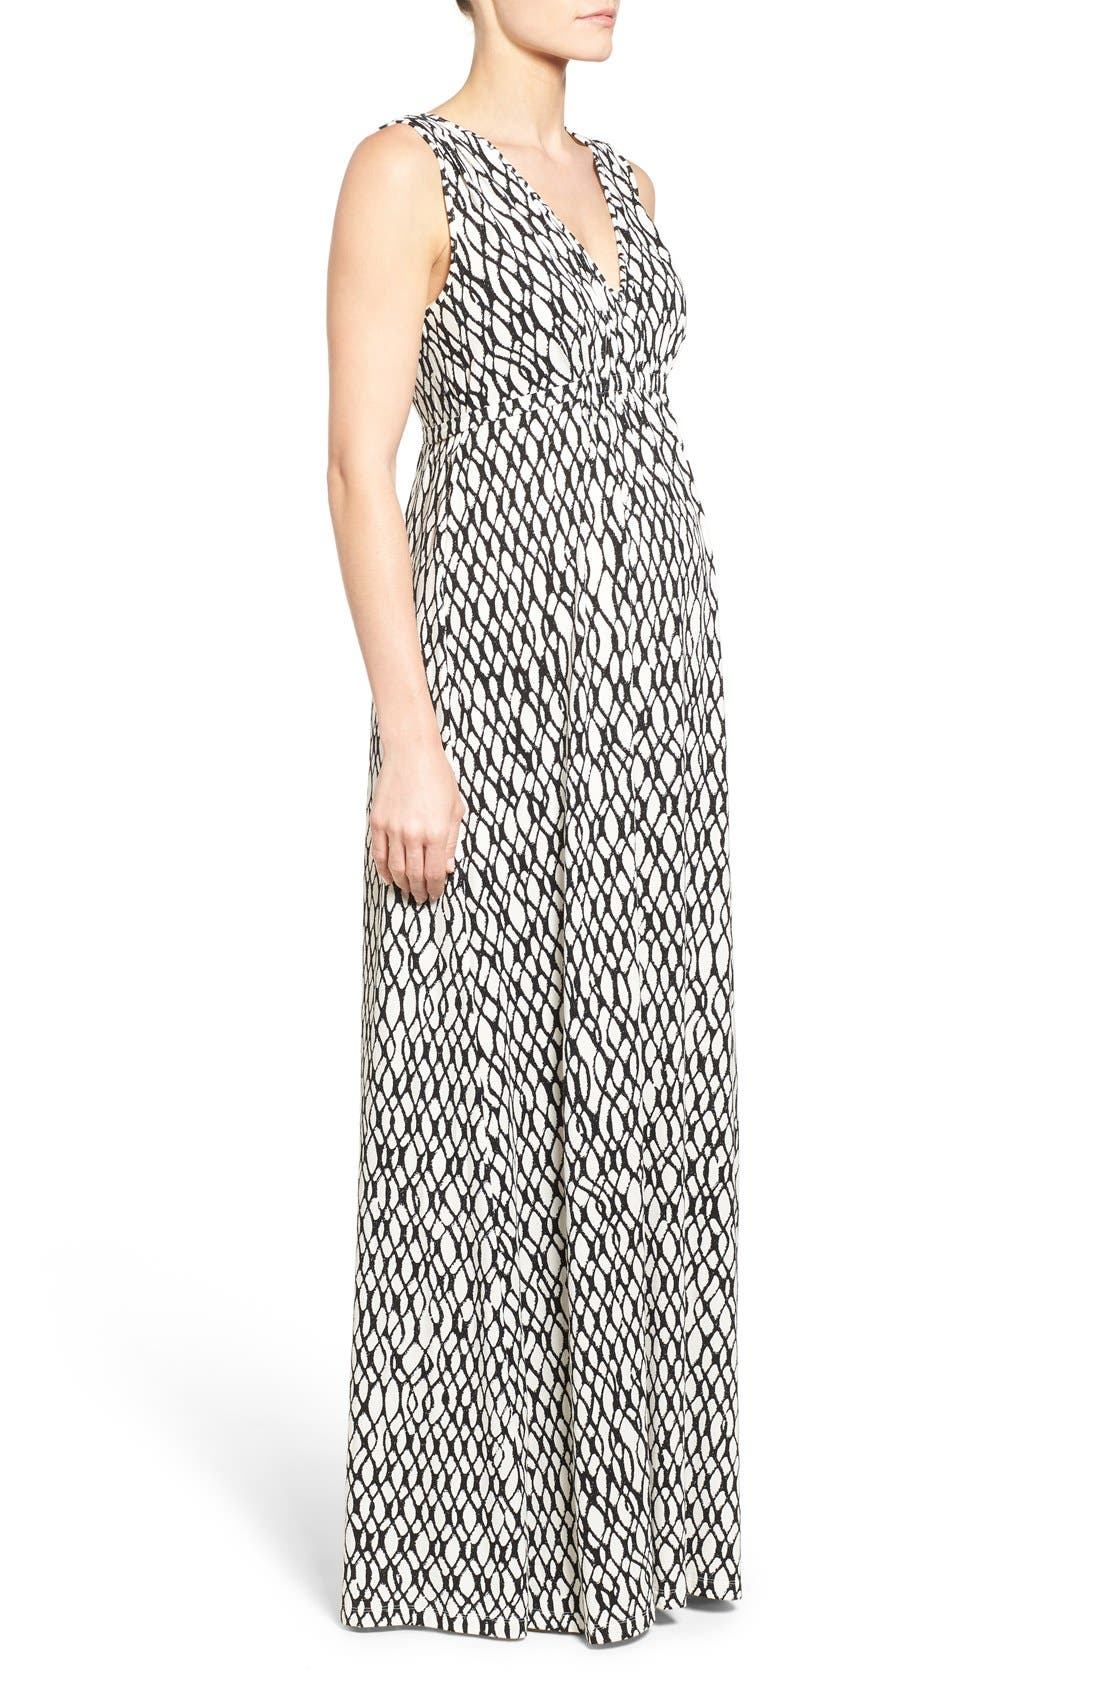 'Grecia' Print Jersey Maternity Maxi Dress,                             Alternate thumbnail 2, color,                             101